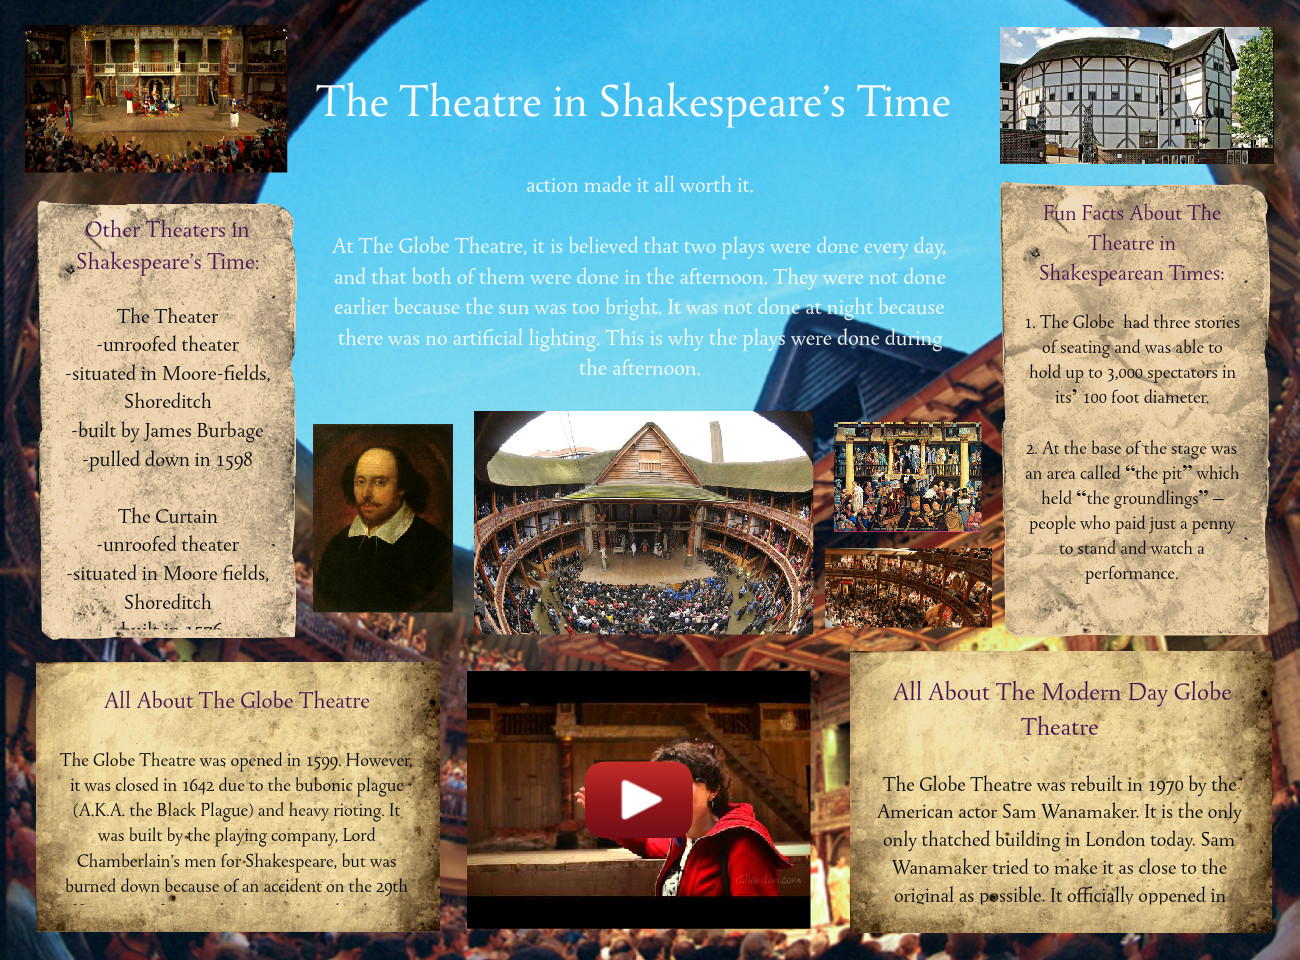 The Theatre in Shakespeare's Time